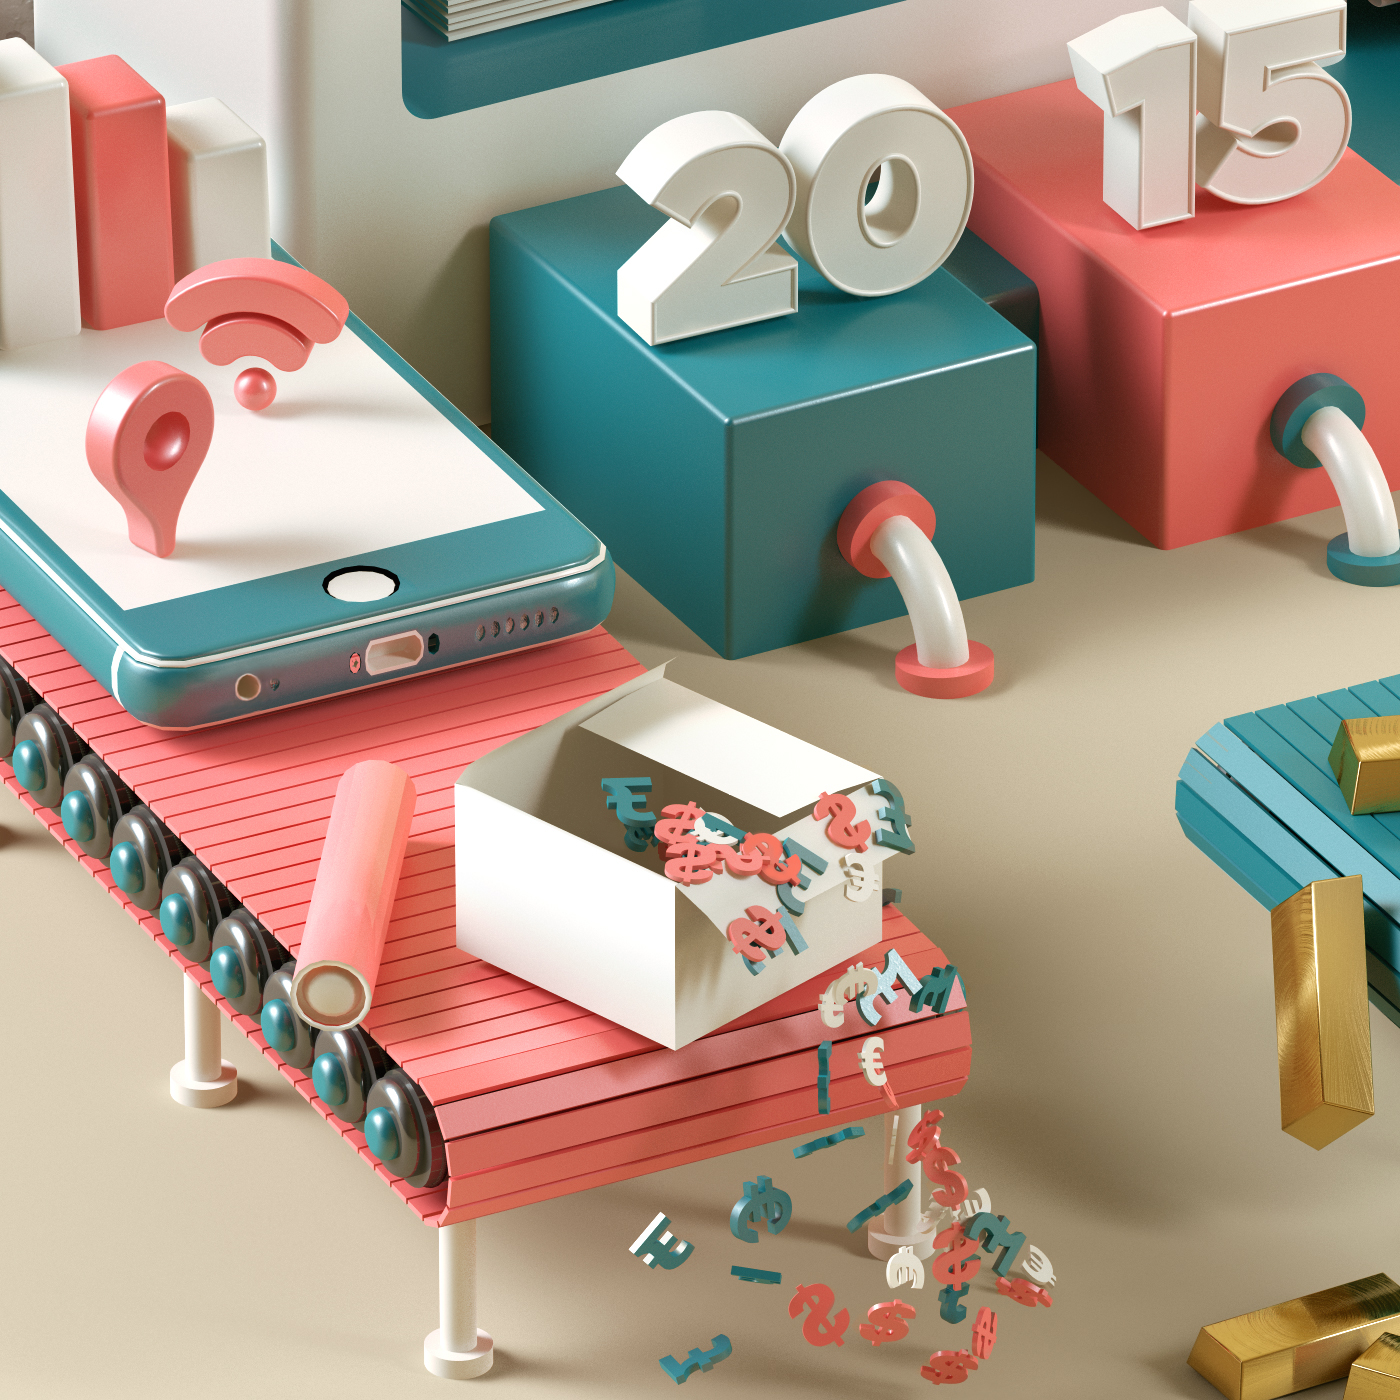 cinema4d,3D,economia,editorial